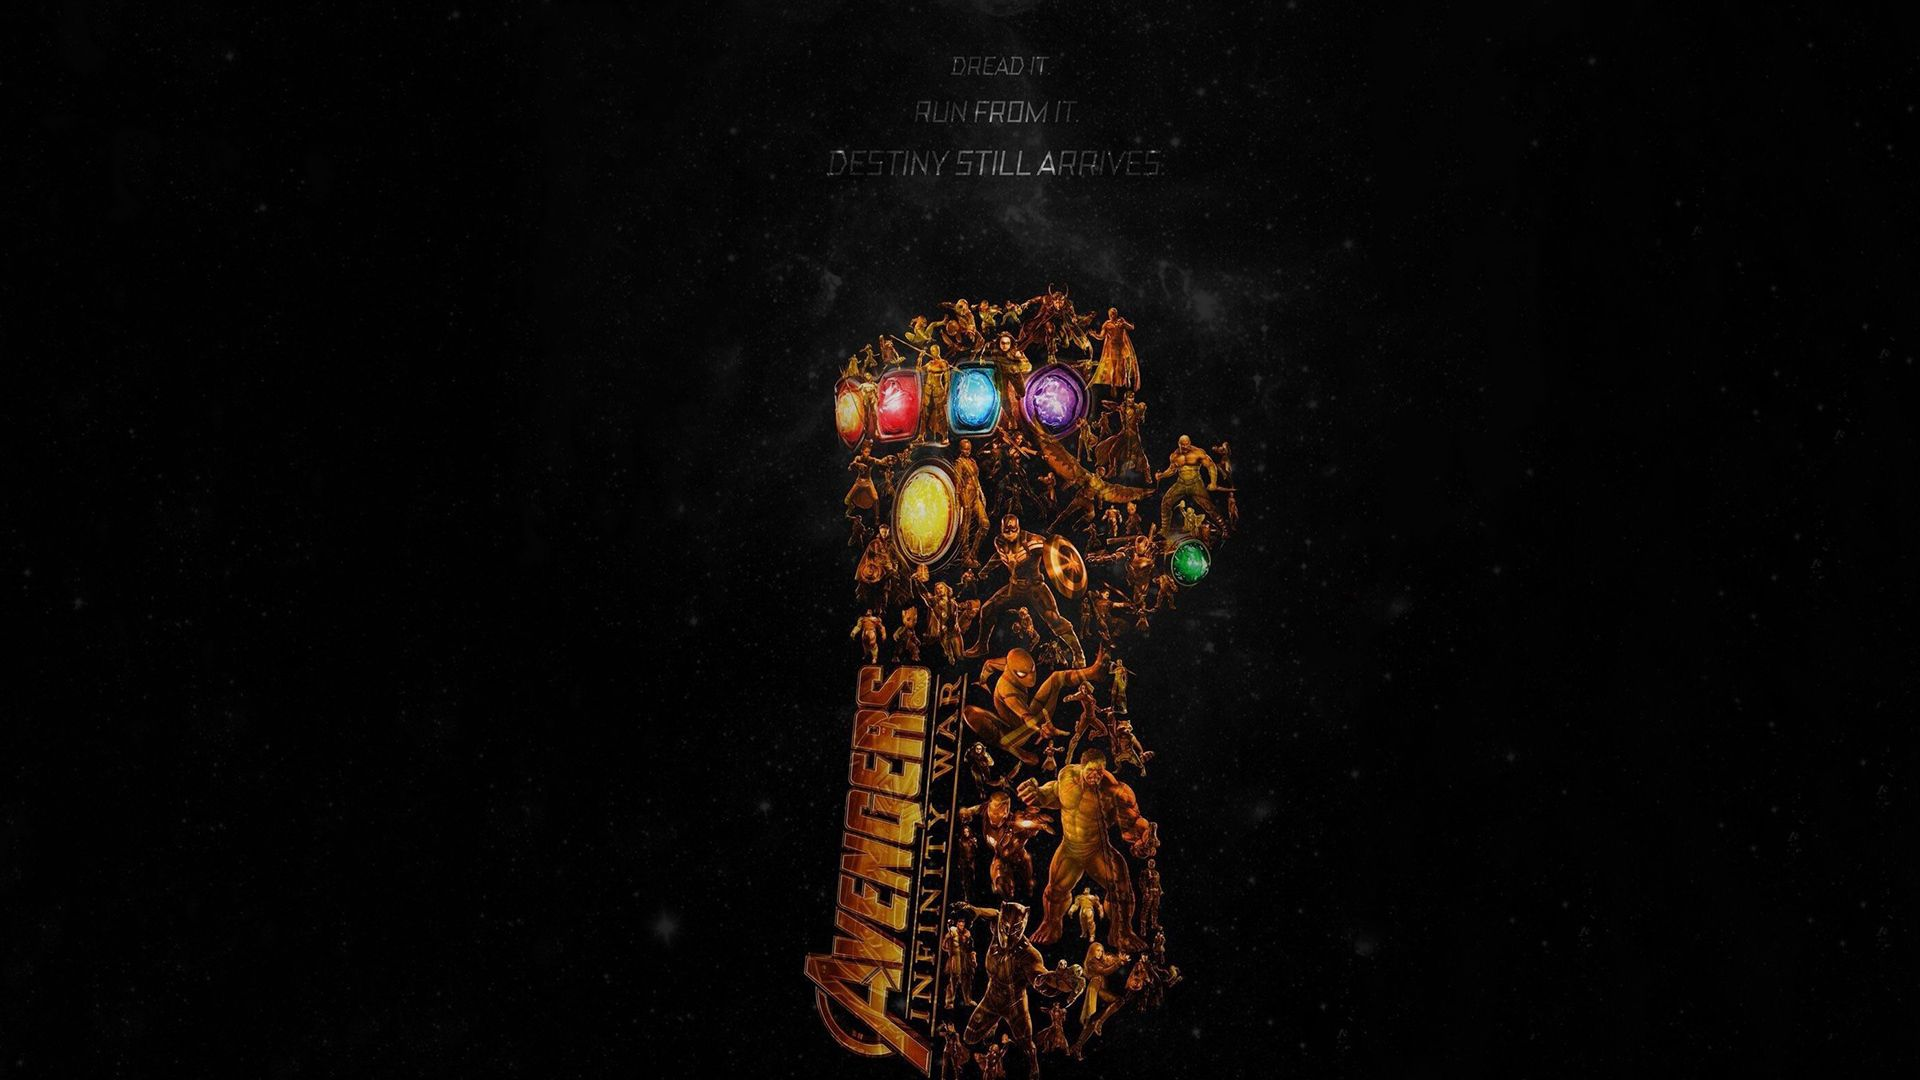 Avengers Infinity War Poster Wallpapers Top Free Avengers Infinity